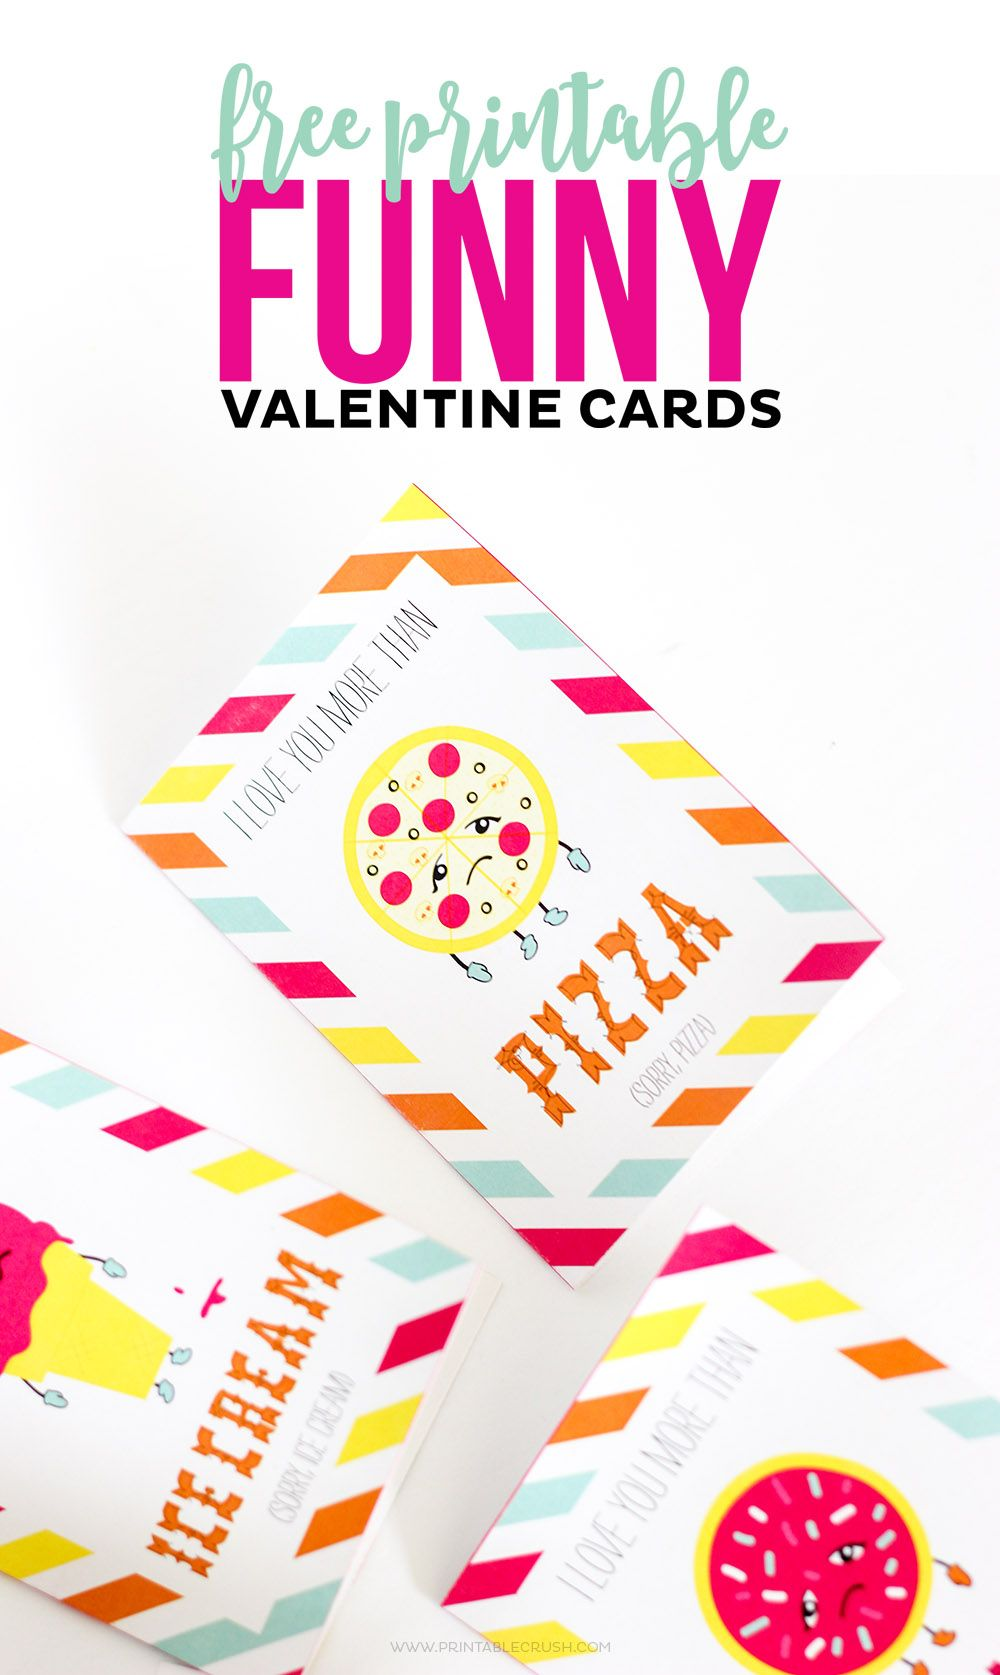 FREE Printable Funny Valentine Cards Funny valentines